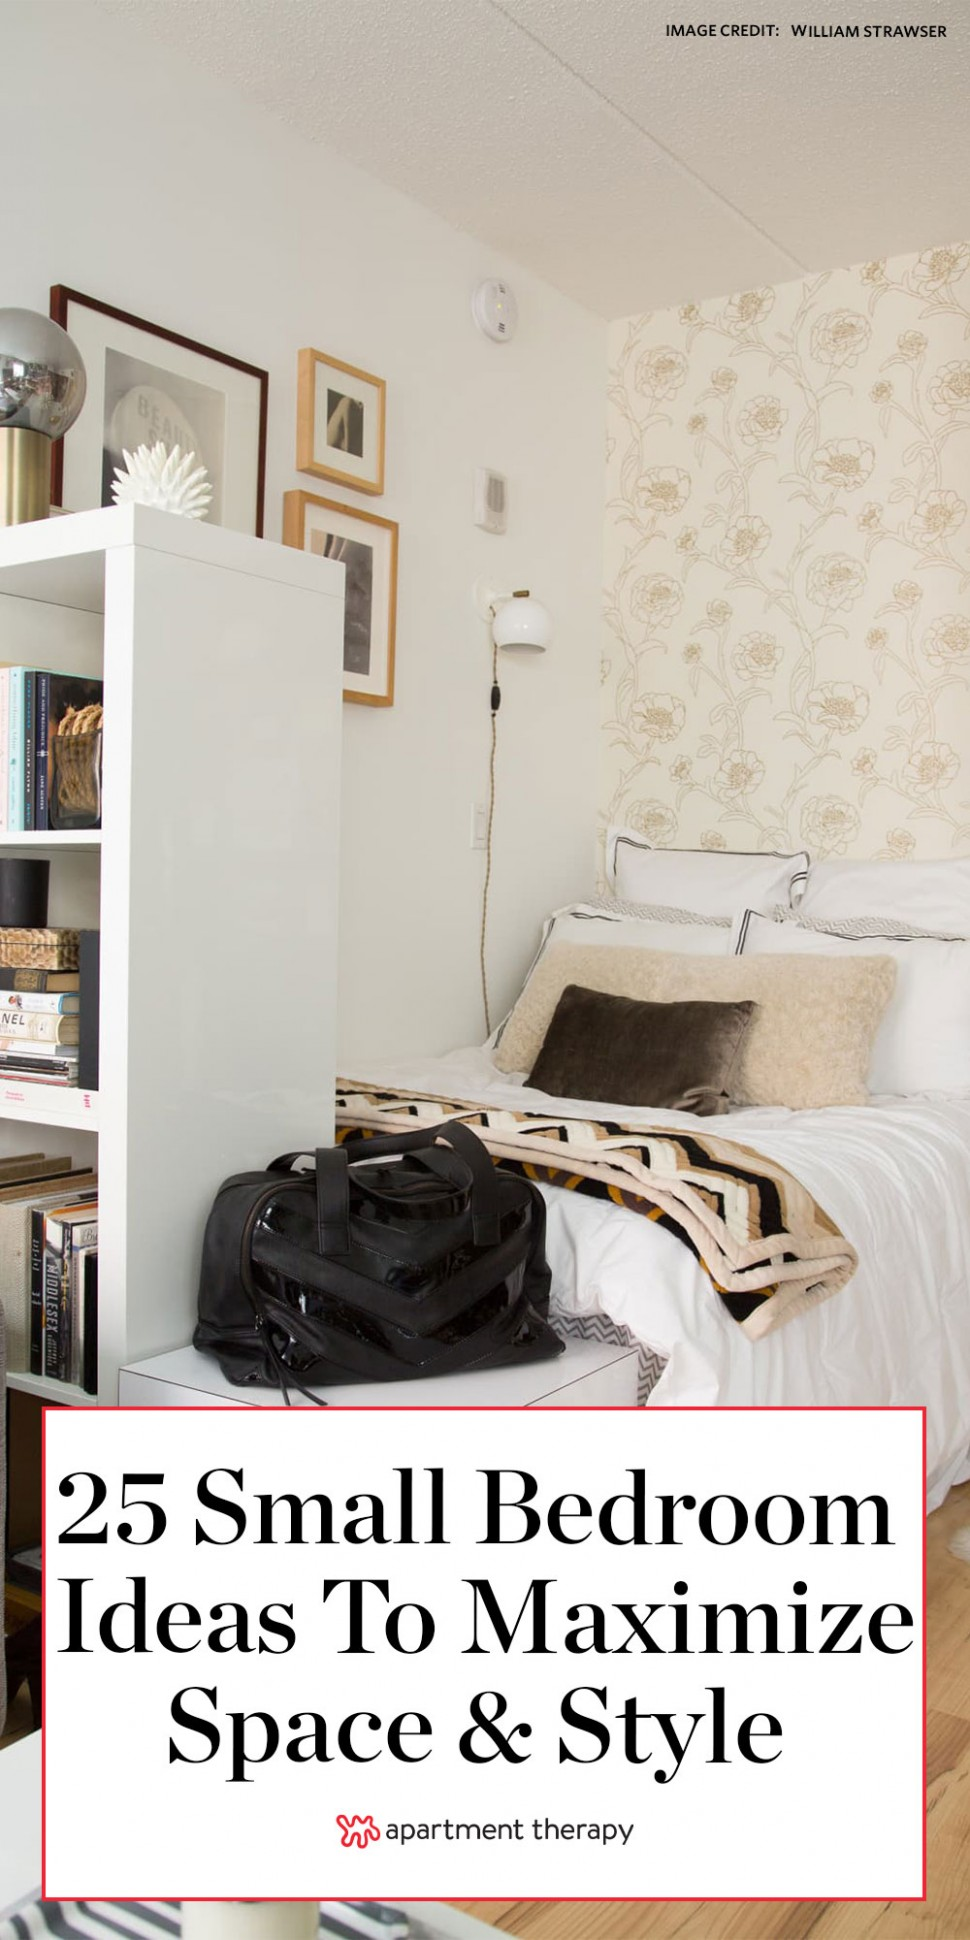 12 Small Bedroom Ideas - How to Decorate a Small Bedroom  - Bedroom Ideas Apartment